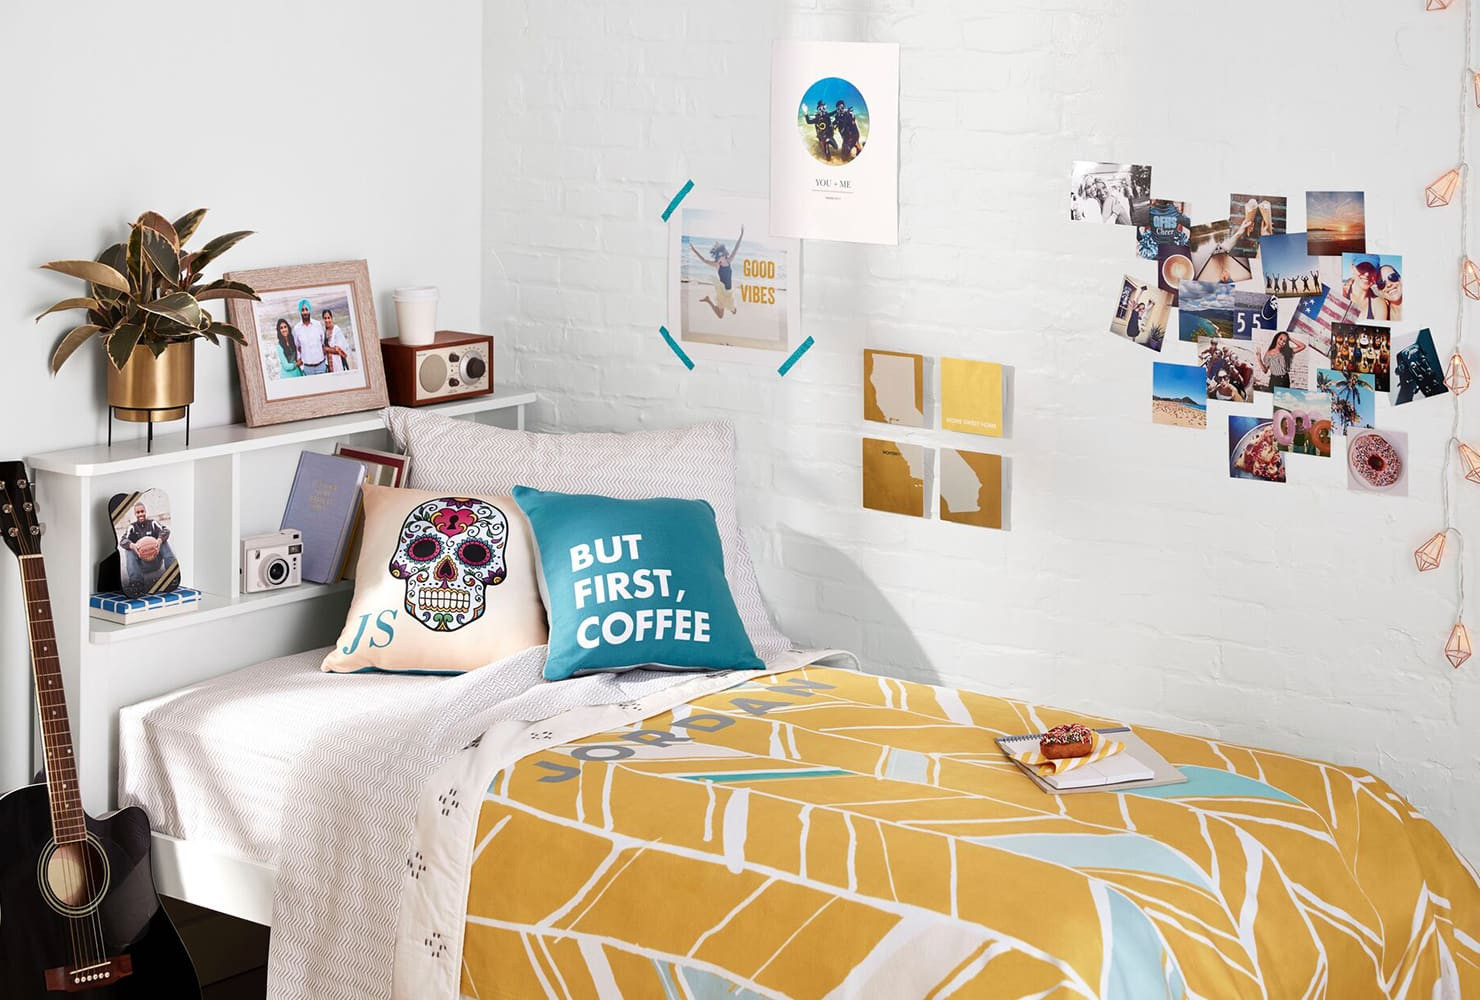 Best ideas about DIY Dorm Room Decorating . Save or Pin 37 Creative DIY Dorm Decor Ideas to Liven Up Your Space Now.